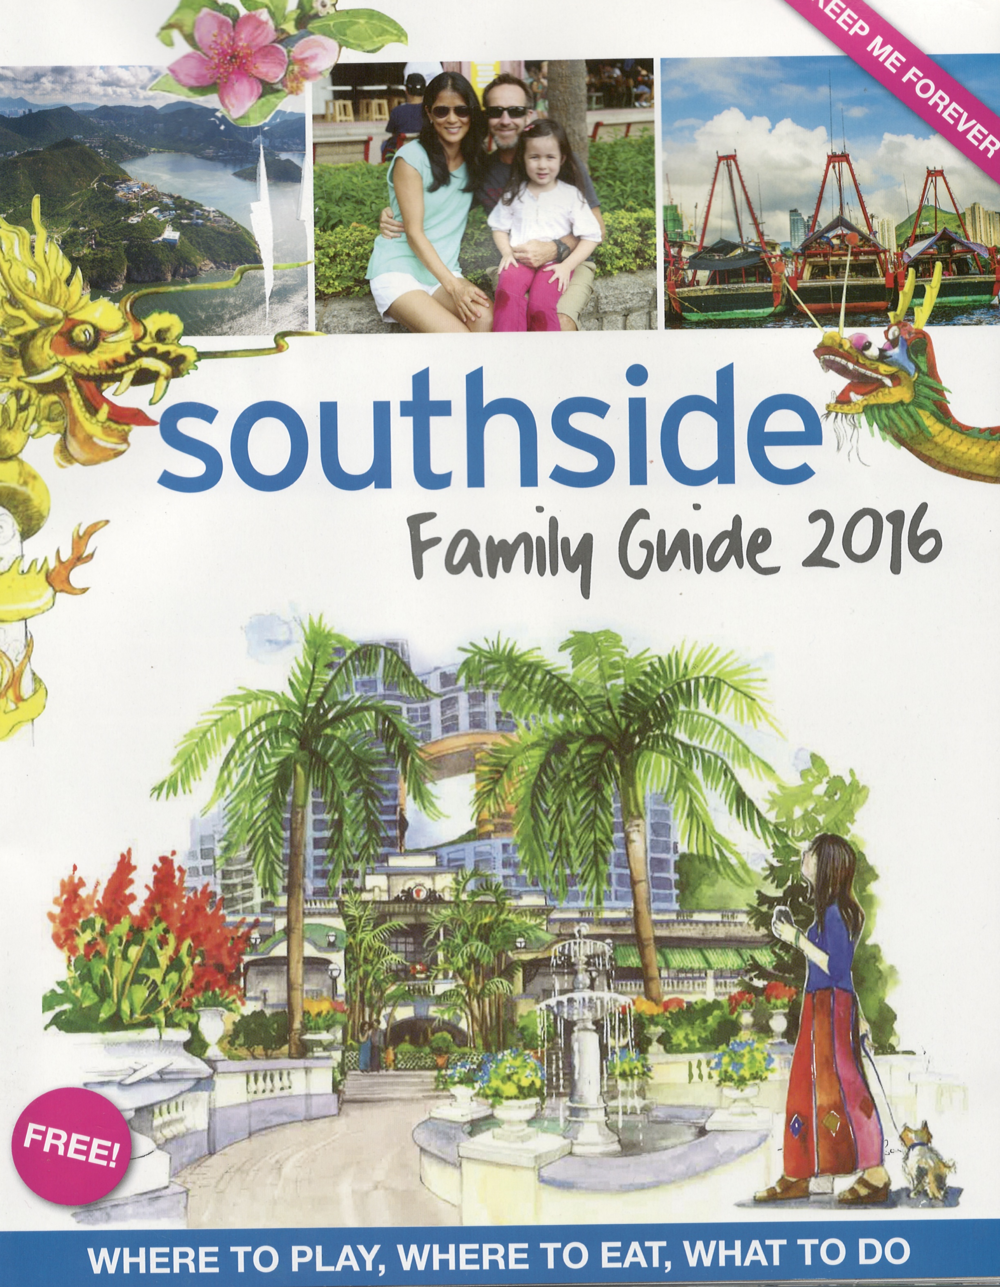 Southside Family Guide 2016 Cover.png